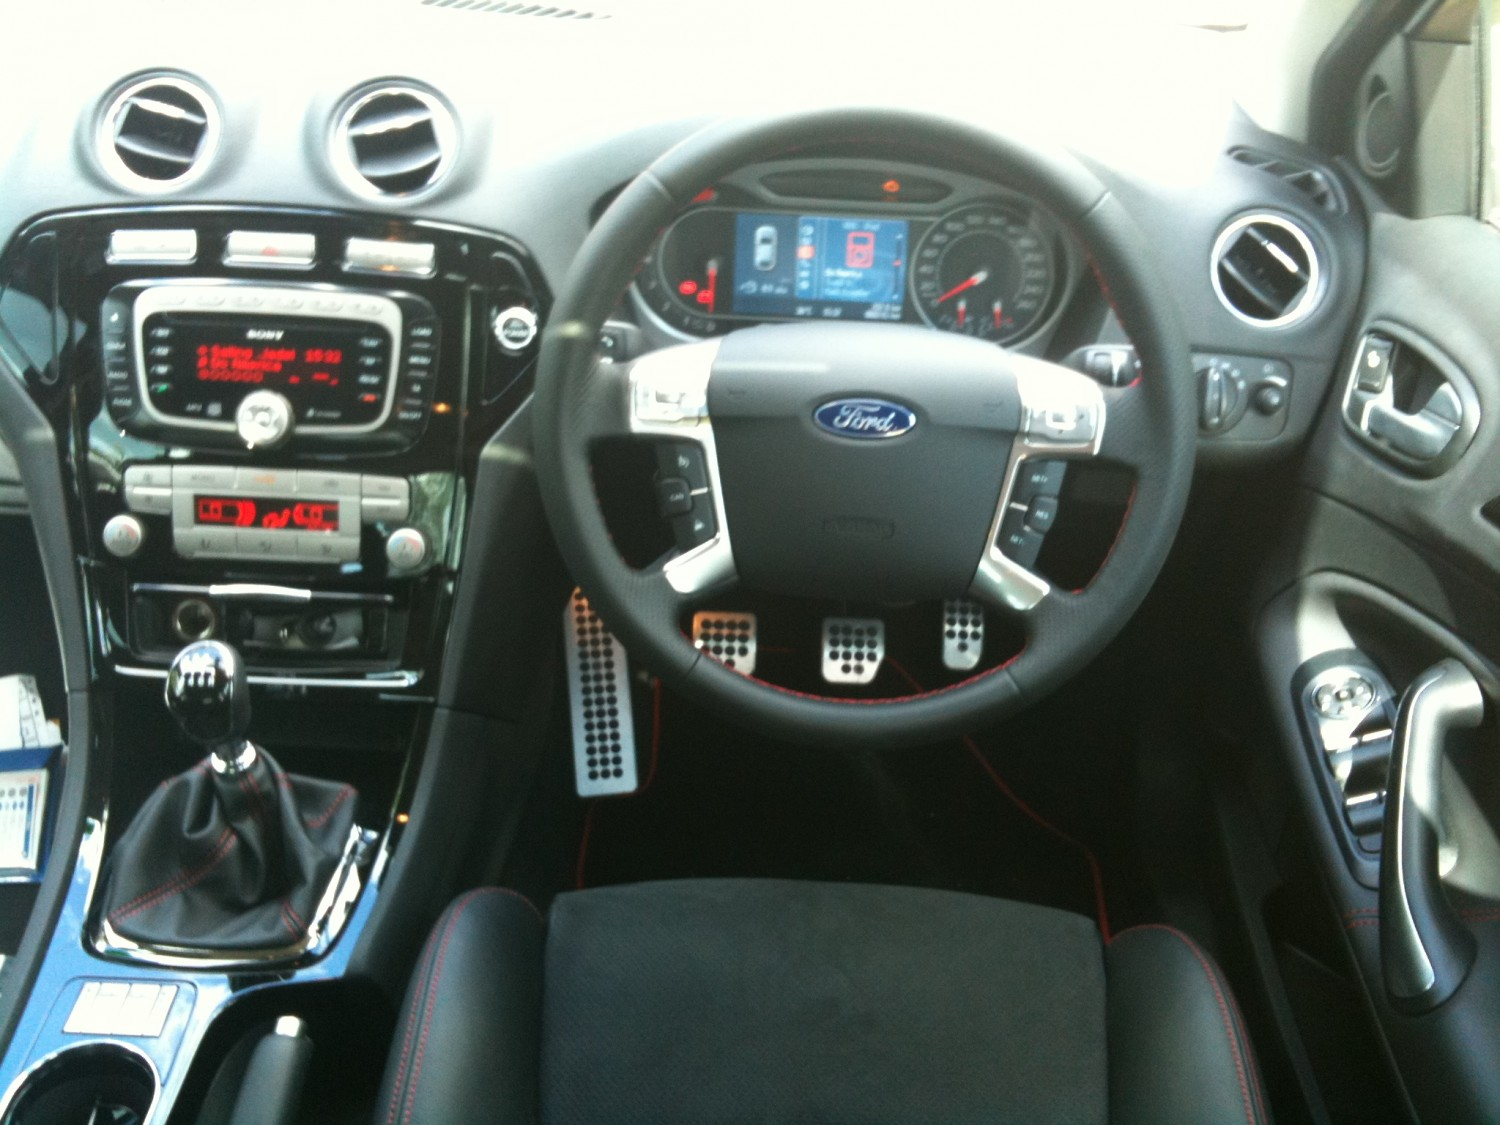 2010 ford mondeo xr5 turbo zammies shannons club. Black Bedroom Furniture Sets. Home Design Ideas